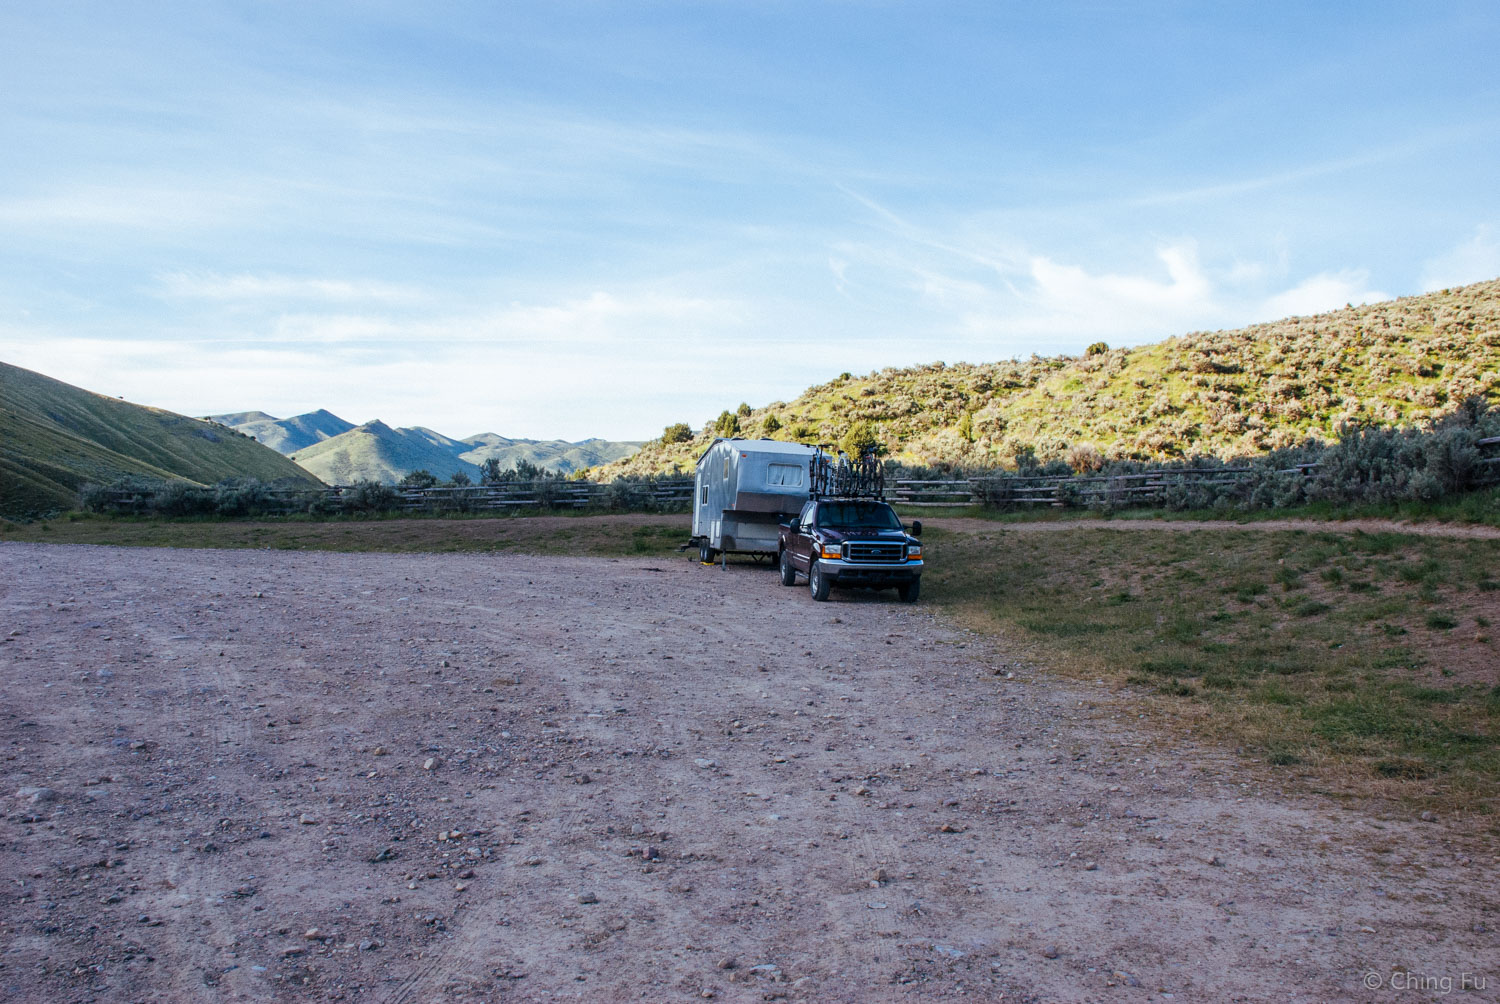 We found this site that we really enjoyed in  Blackrock Canyon, ID  thanks to Free Campsites.